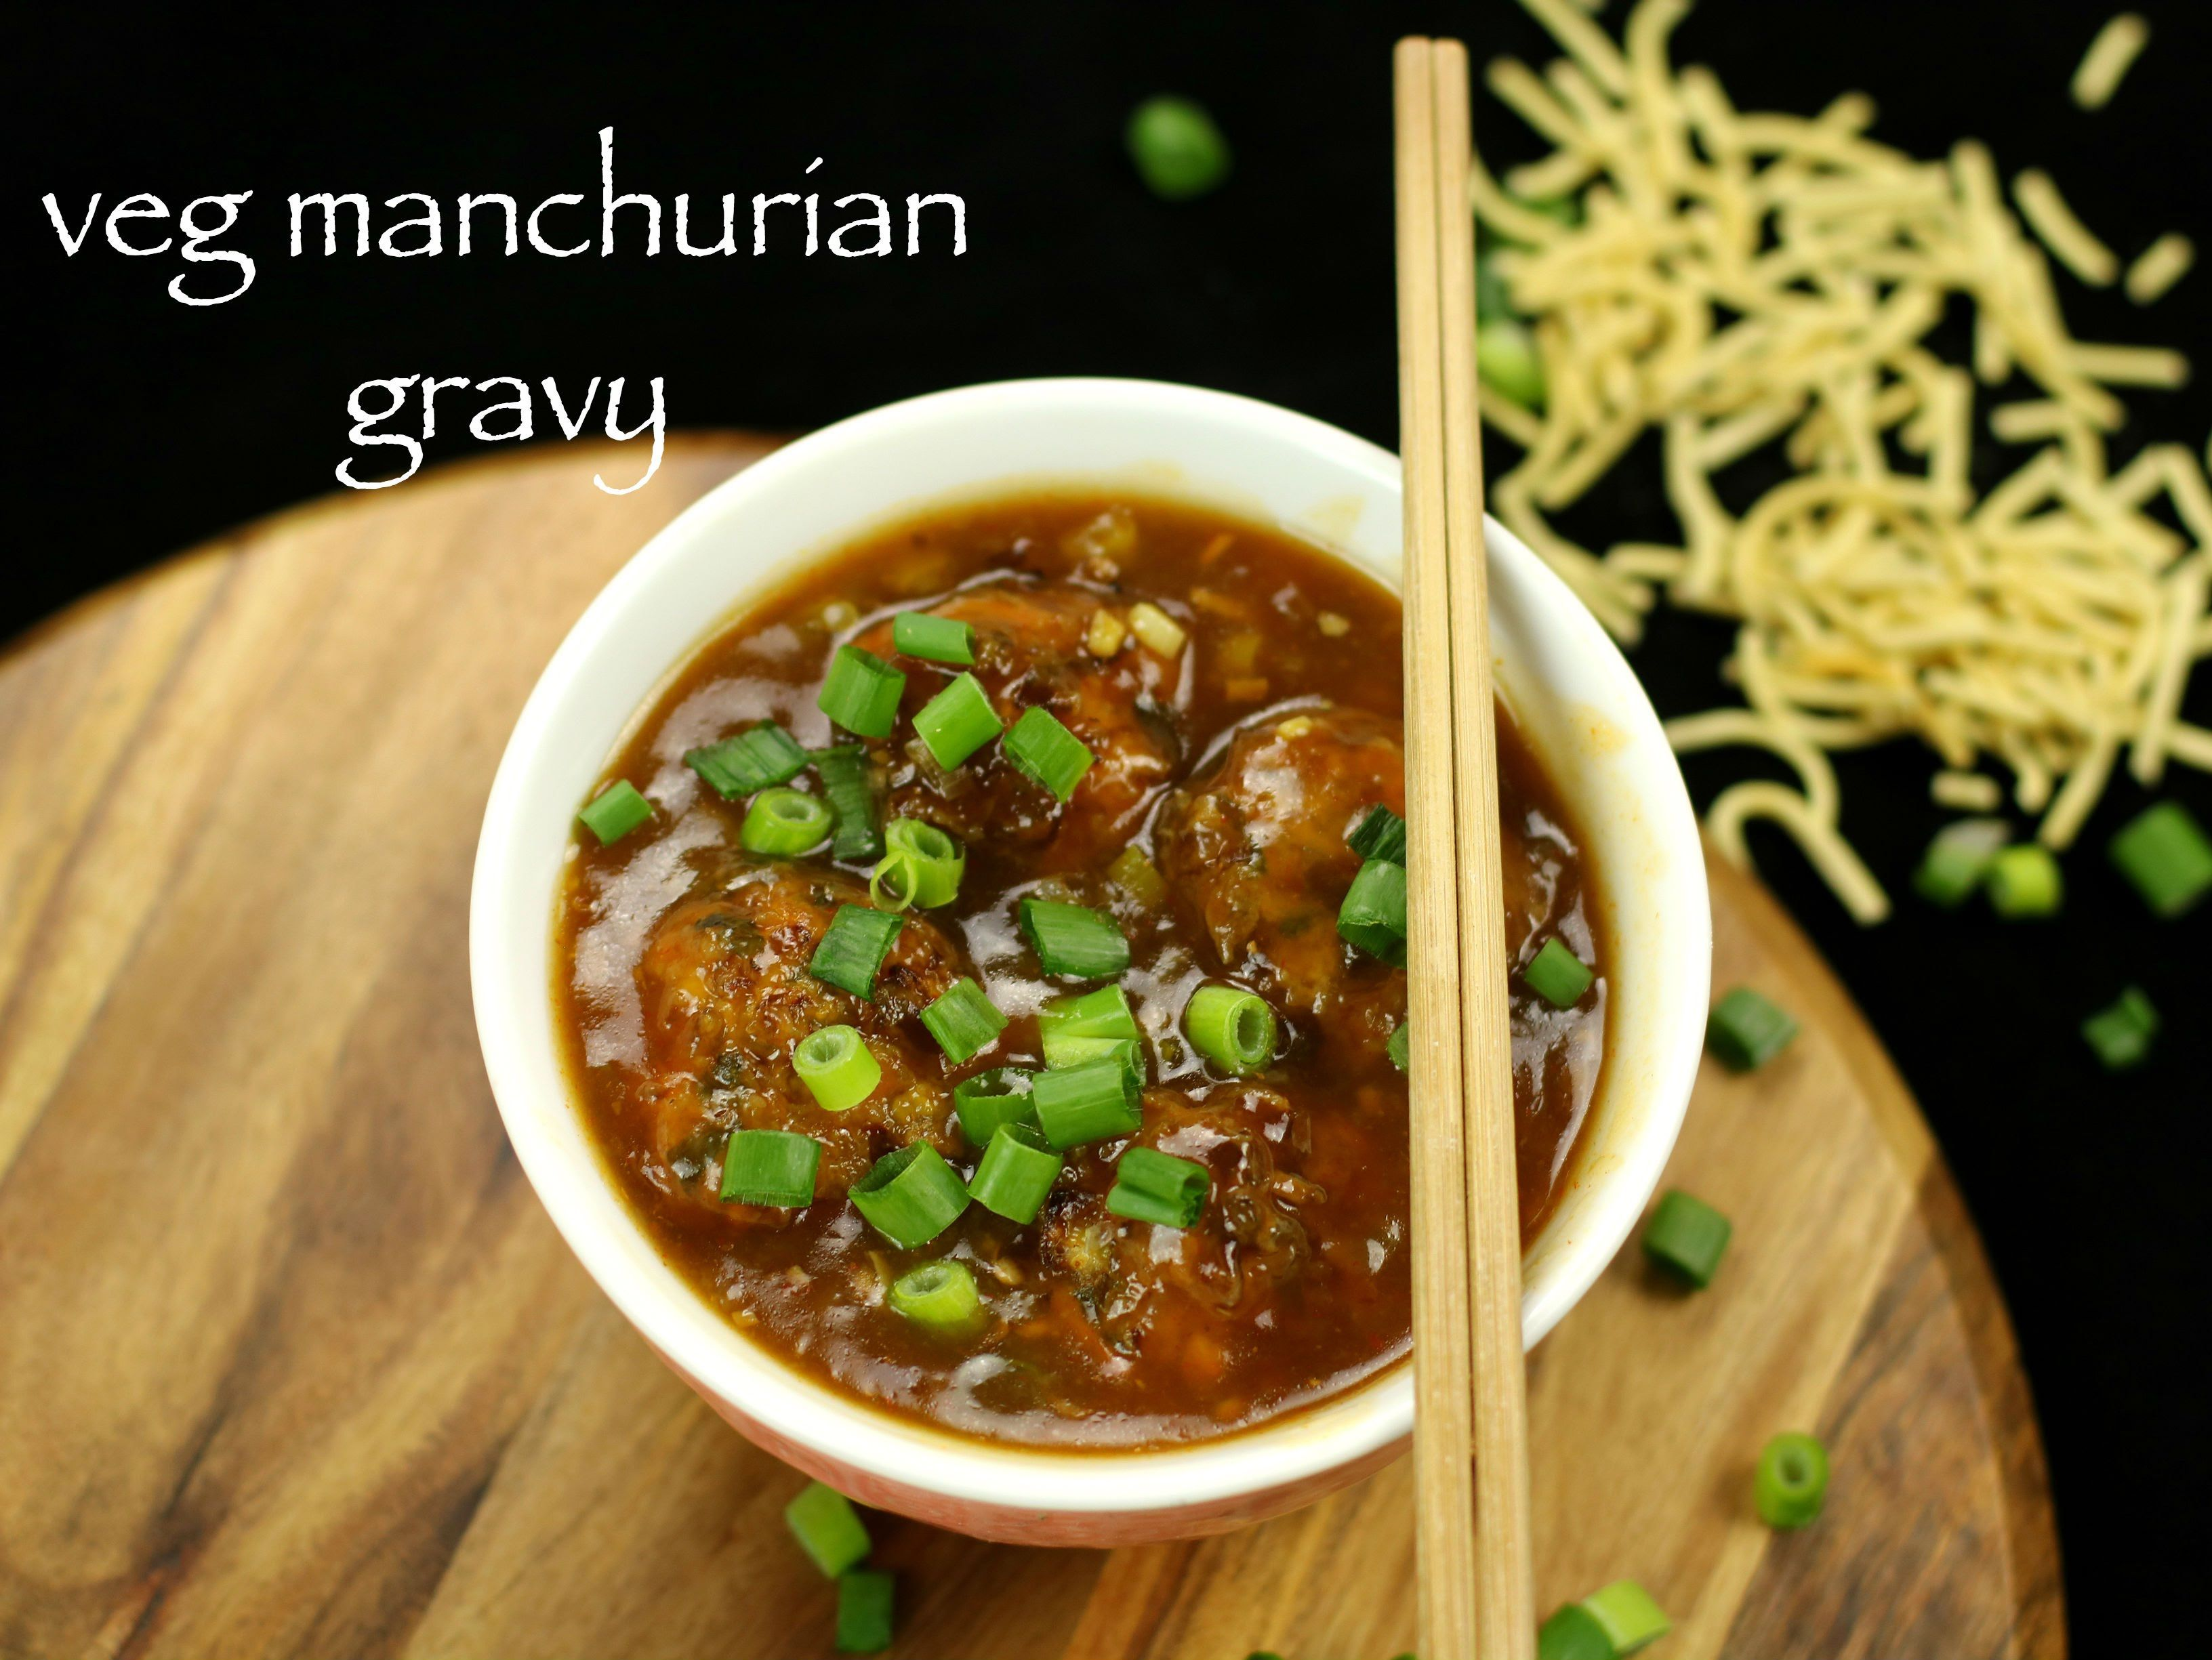 Veg manchurian gravy recipe vegetable manchurian gravy recipe veg manchurian gravy recipe vegetable manchurian gravy recipe with step by step photovideo recipe a popular indo chinese indian street food cuisine forumfinder Images